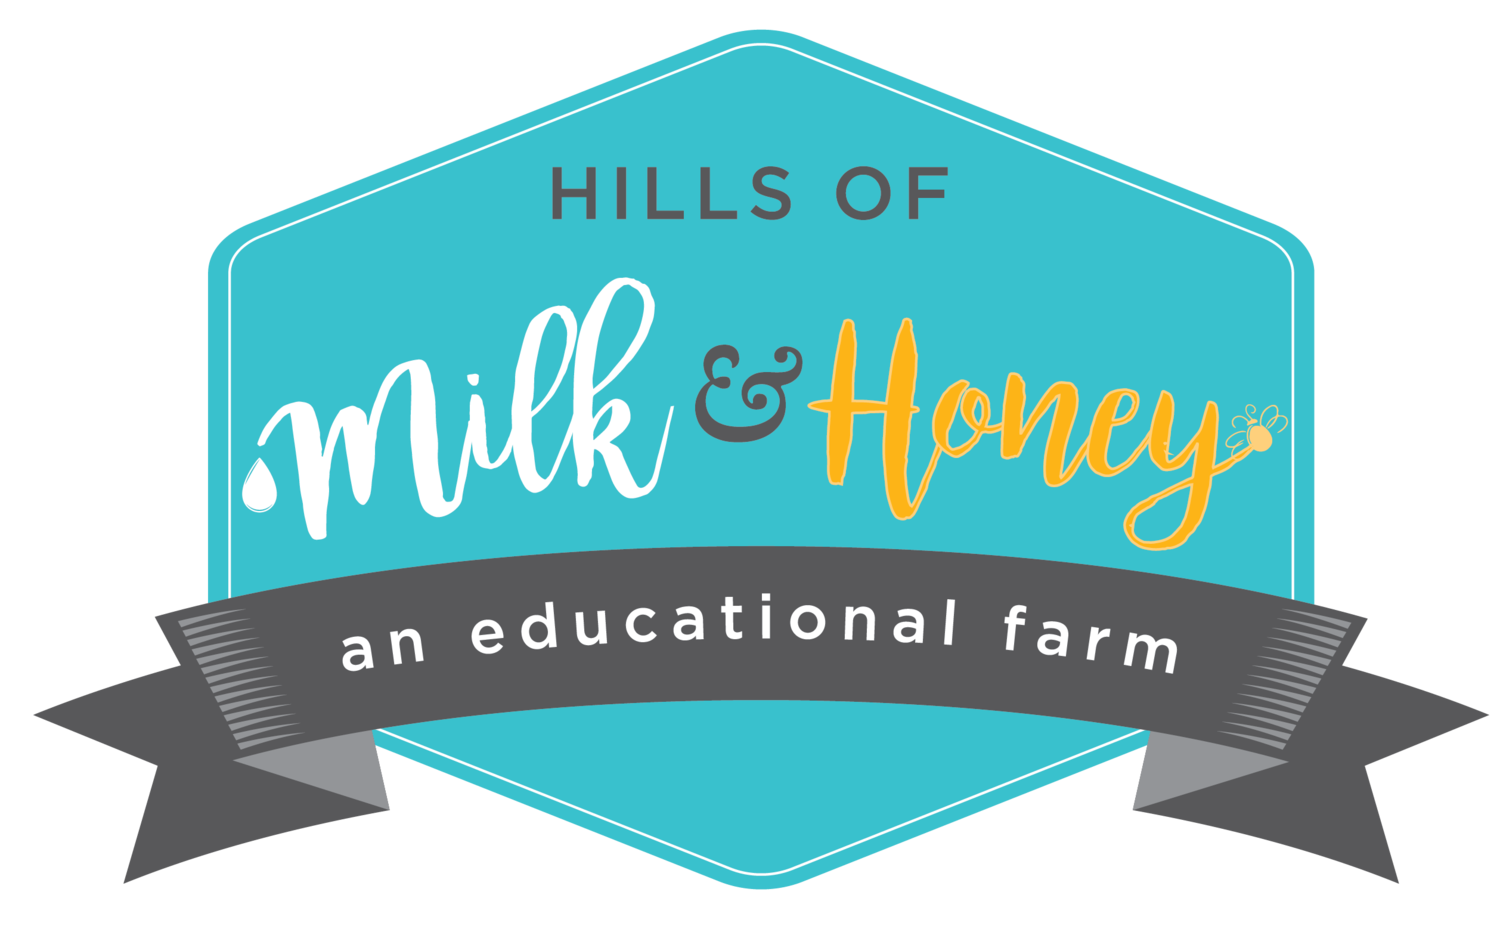 Hills of Milk and Honey - an Educational Farm